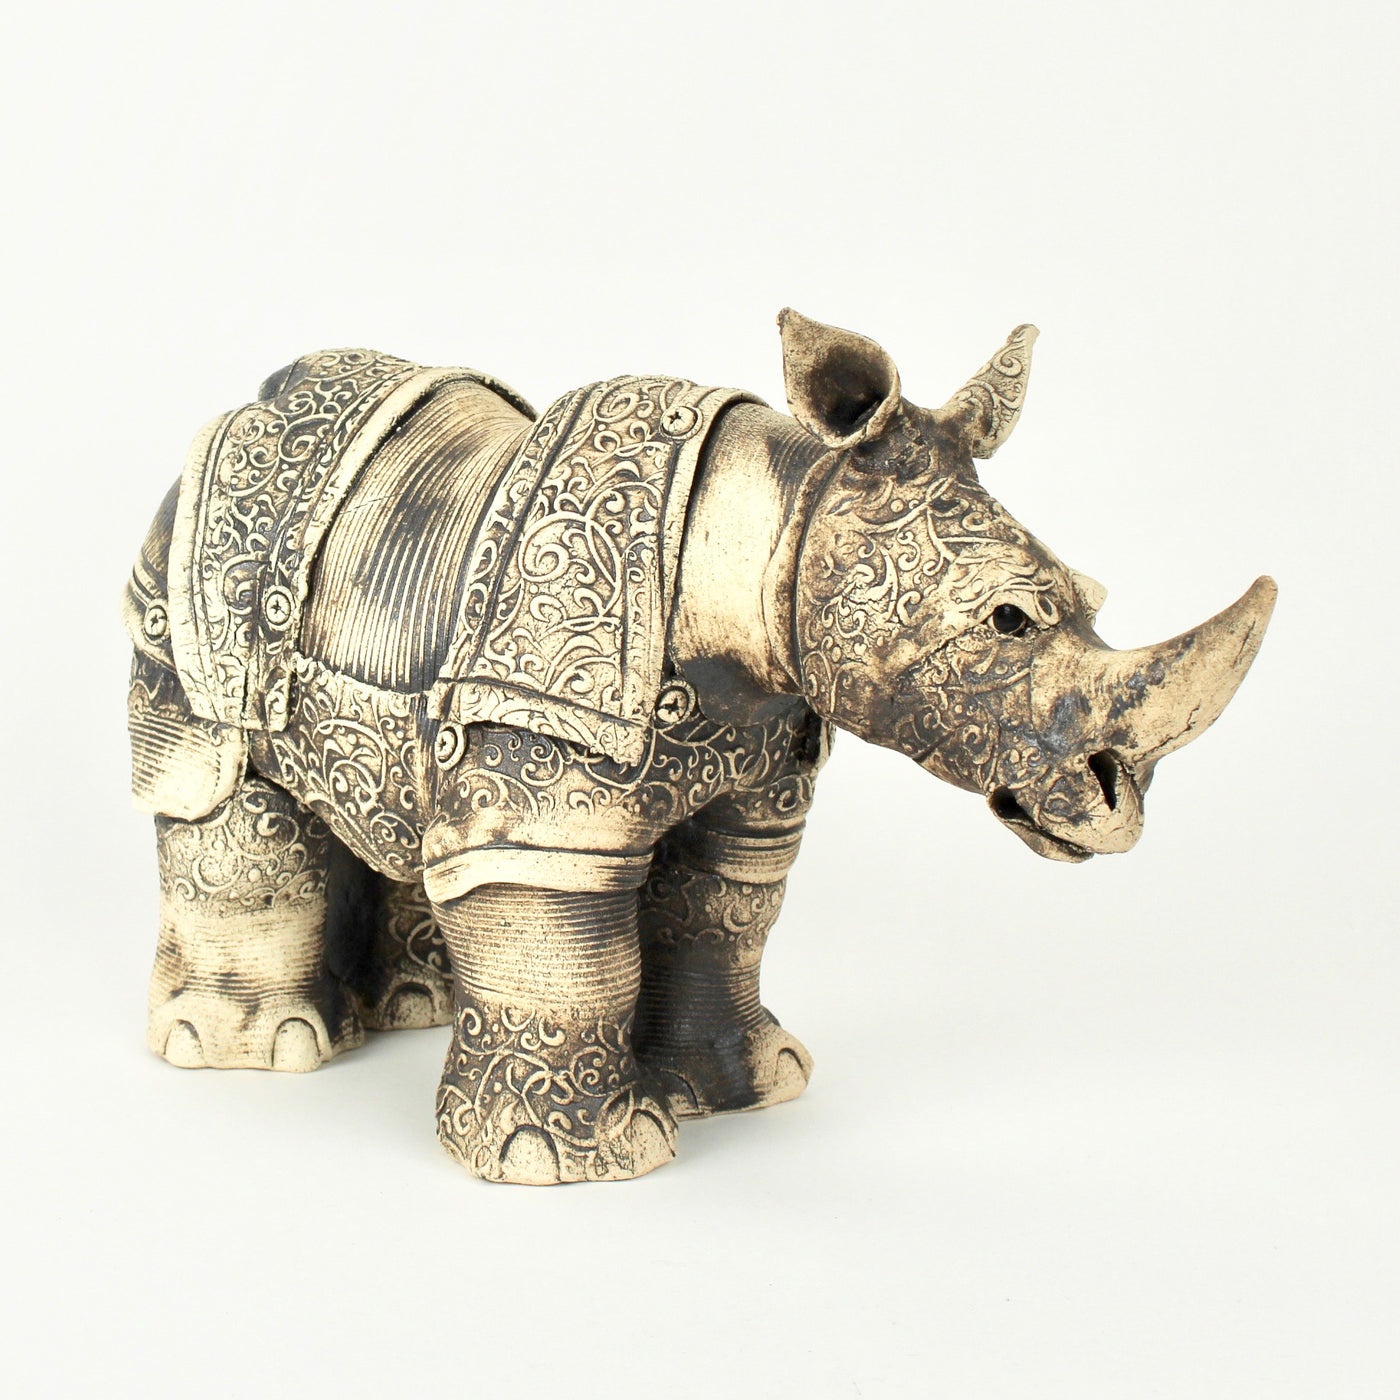 Rhino - medium II